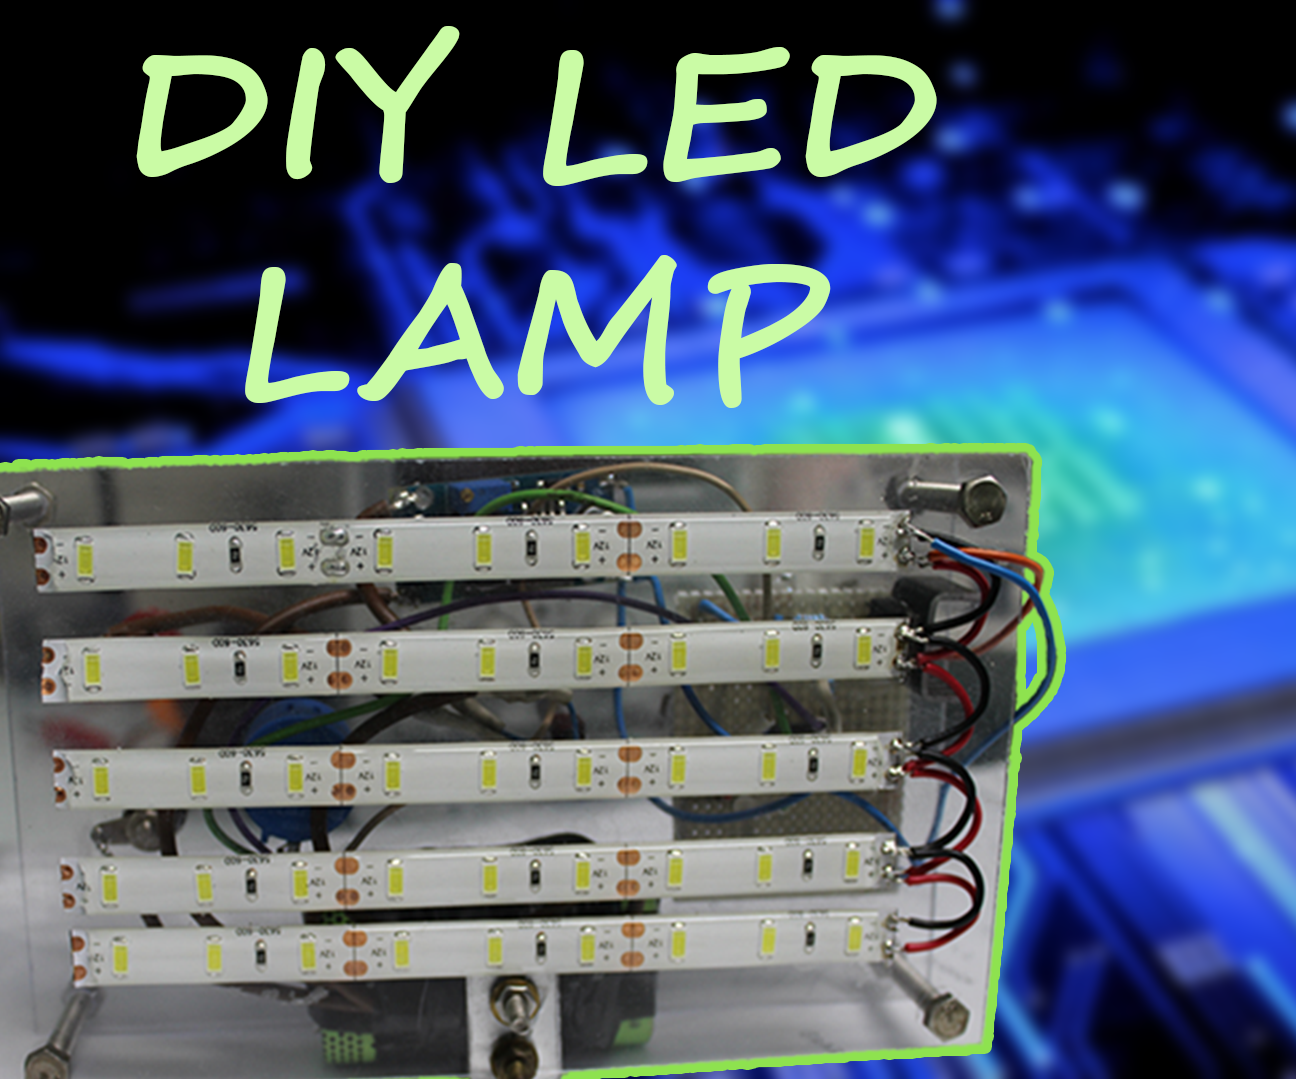 DIY LED LAMP: 7 Steps (with Pictures)